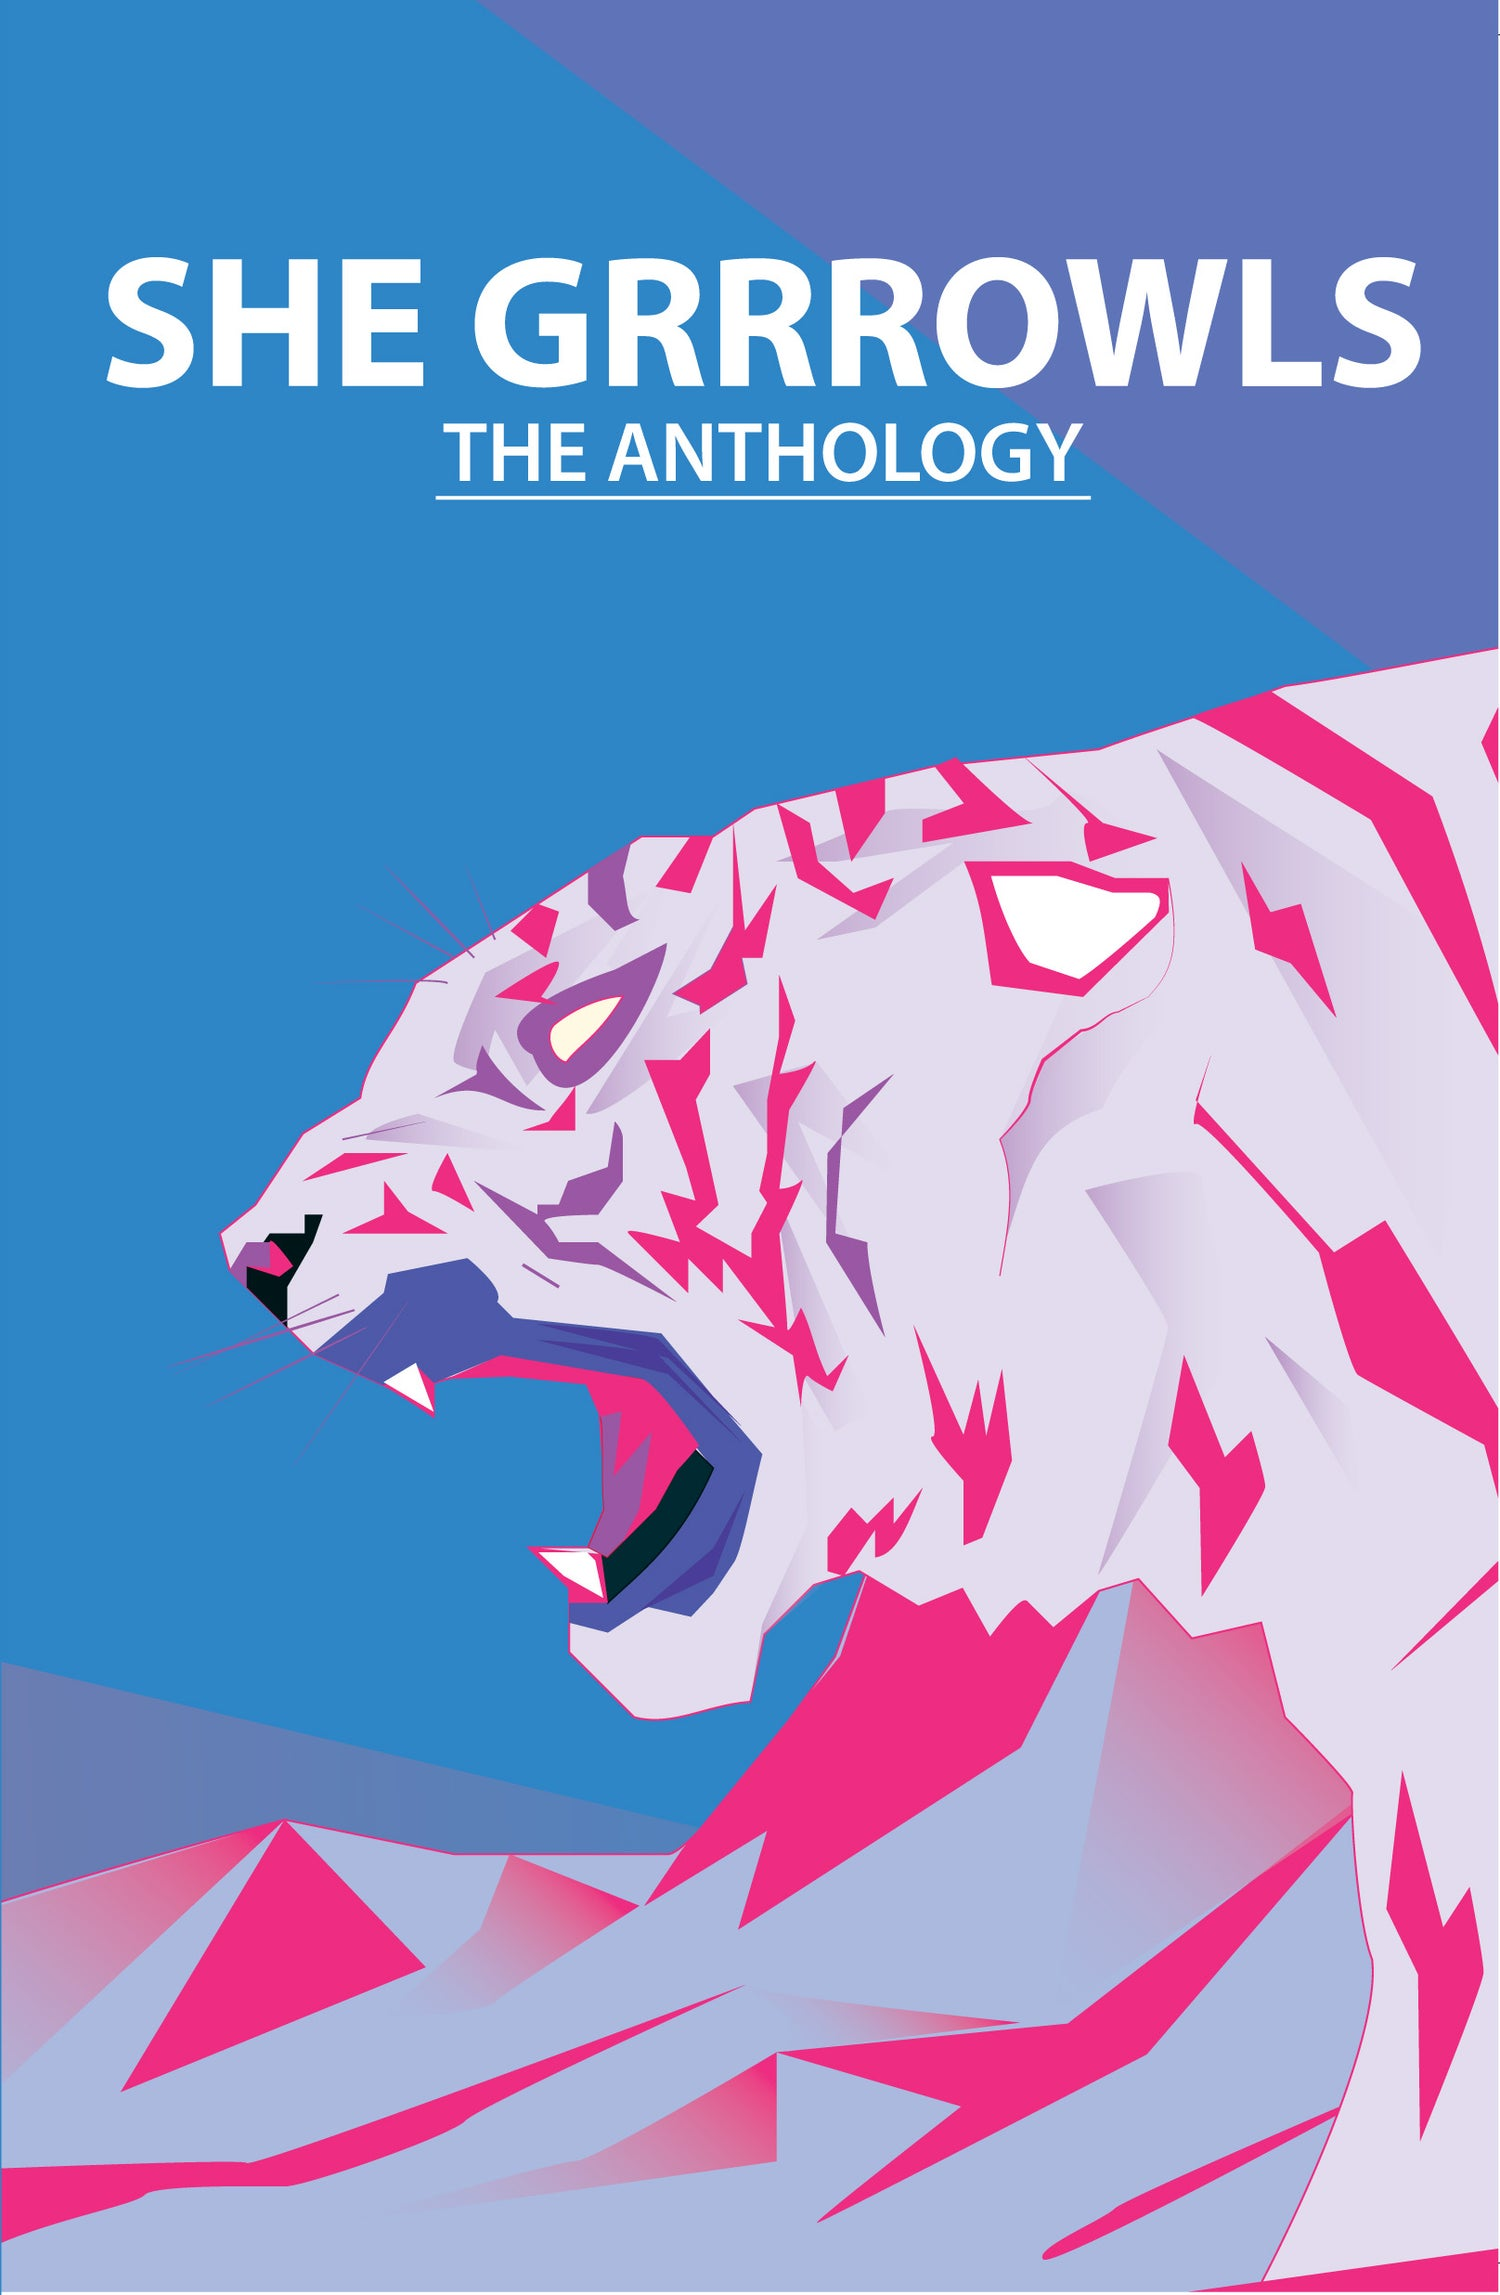 Image of She Grrrowls - The Anthology